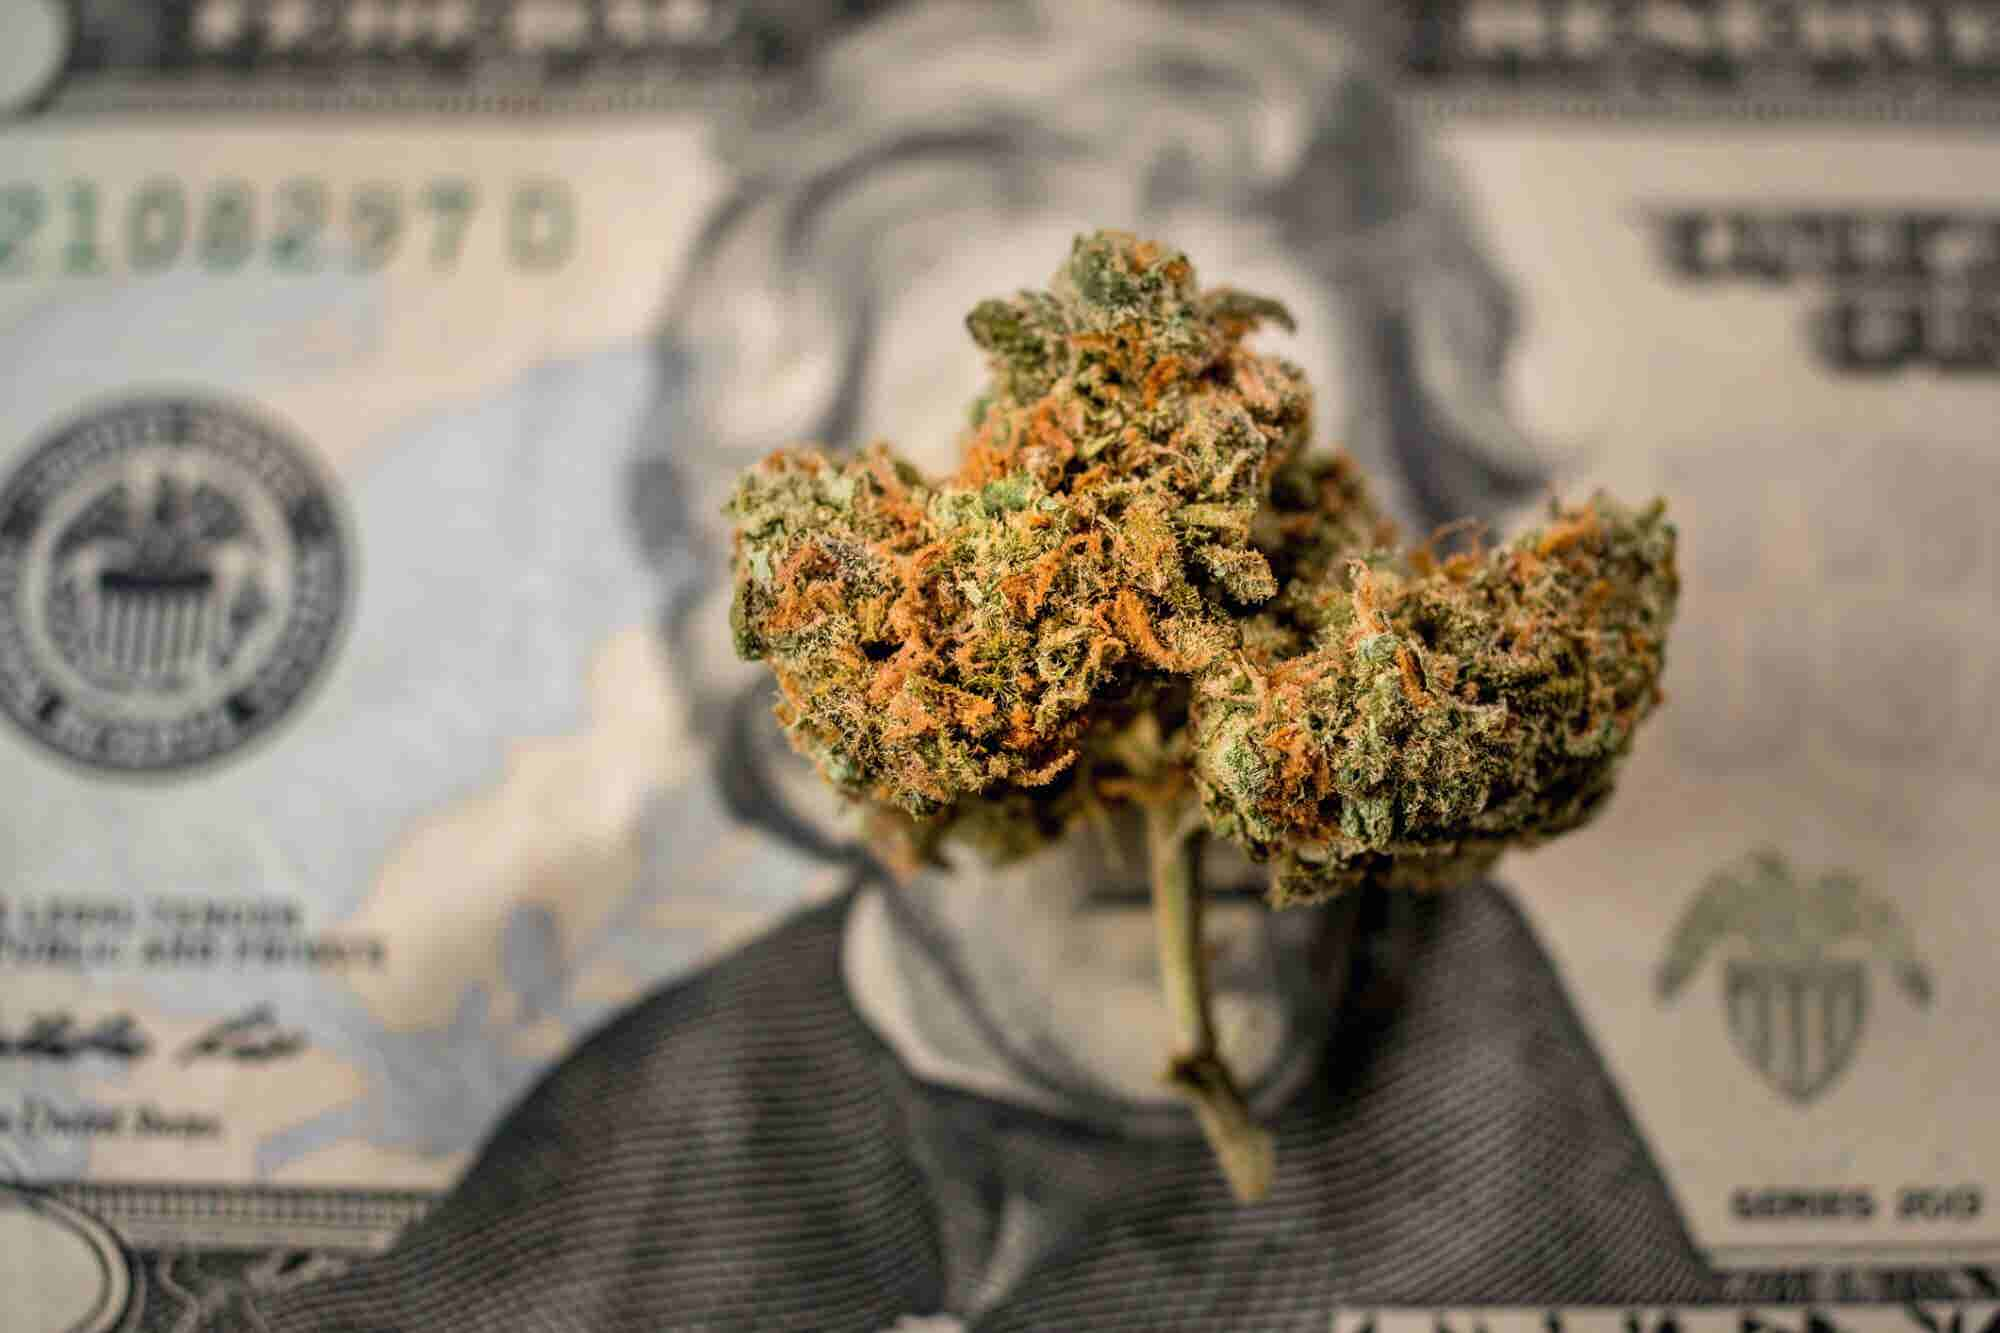 Silicon Valley VCs Were Eager to Hear About Our Cannabis Tech Firm but Reluctant to Invest